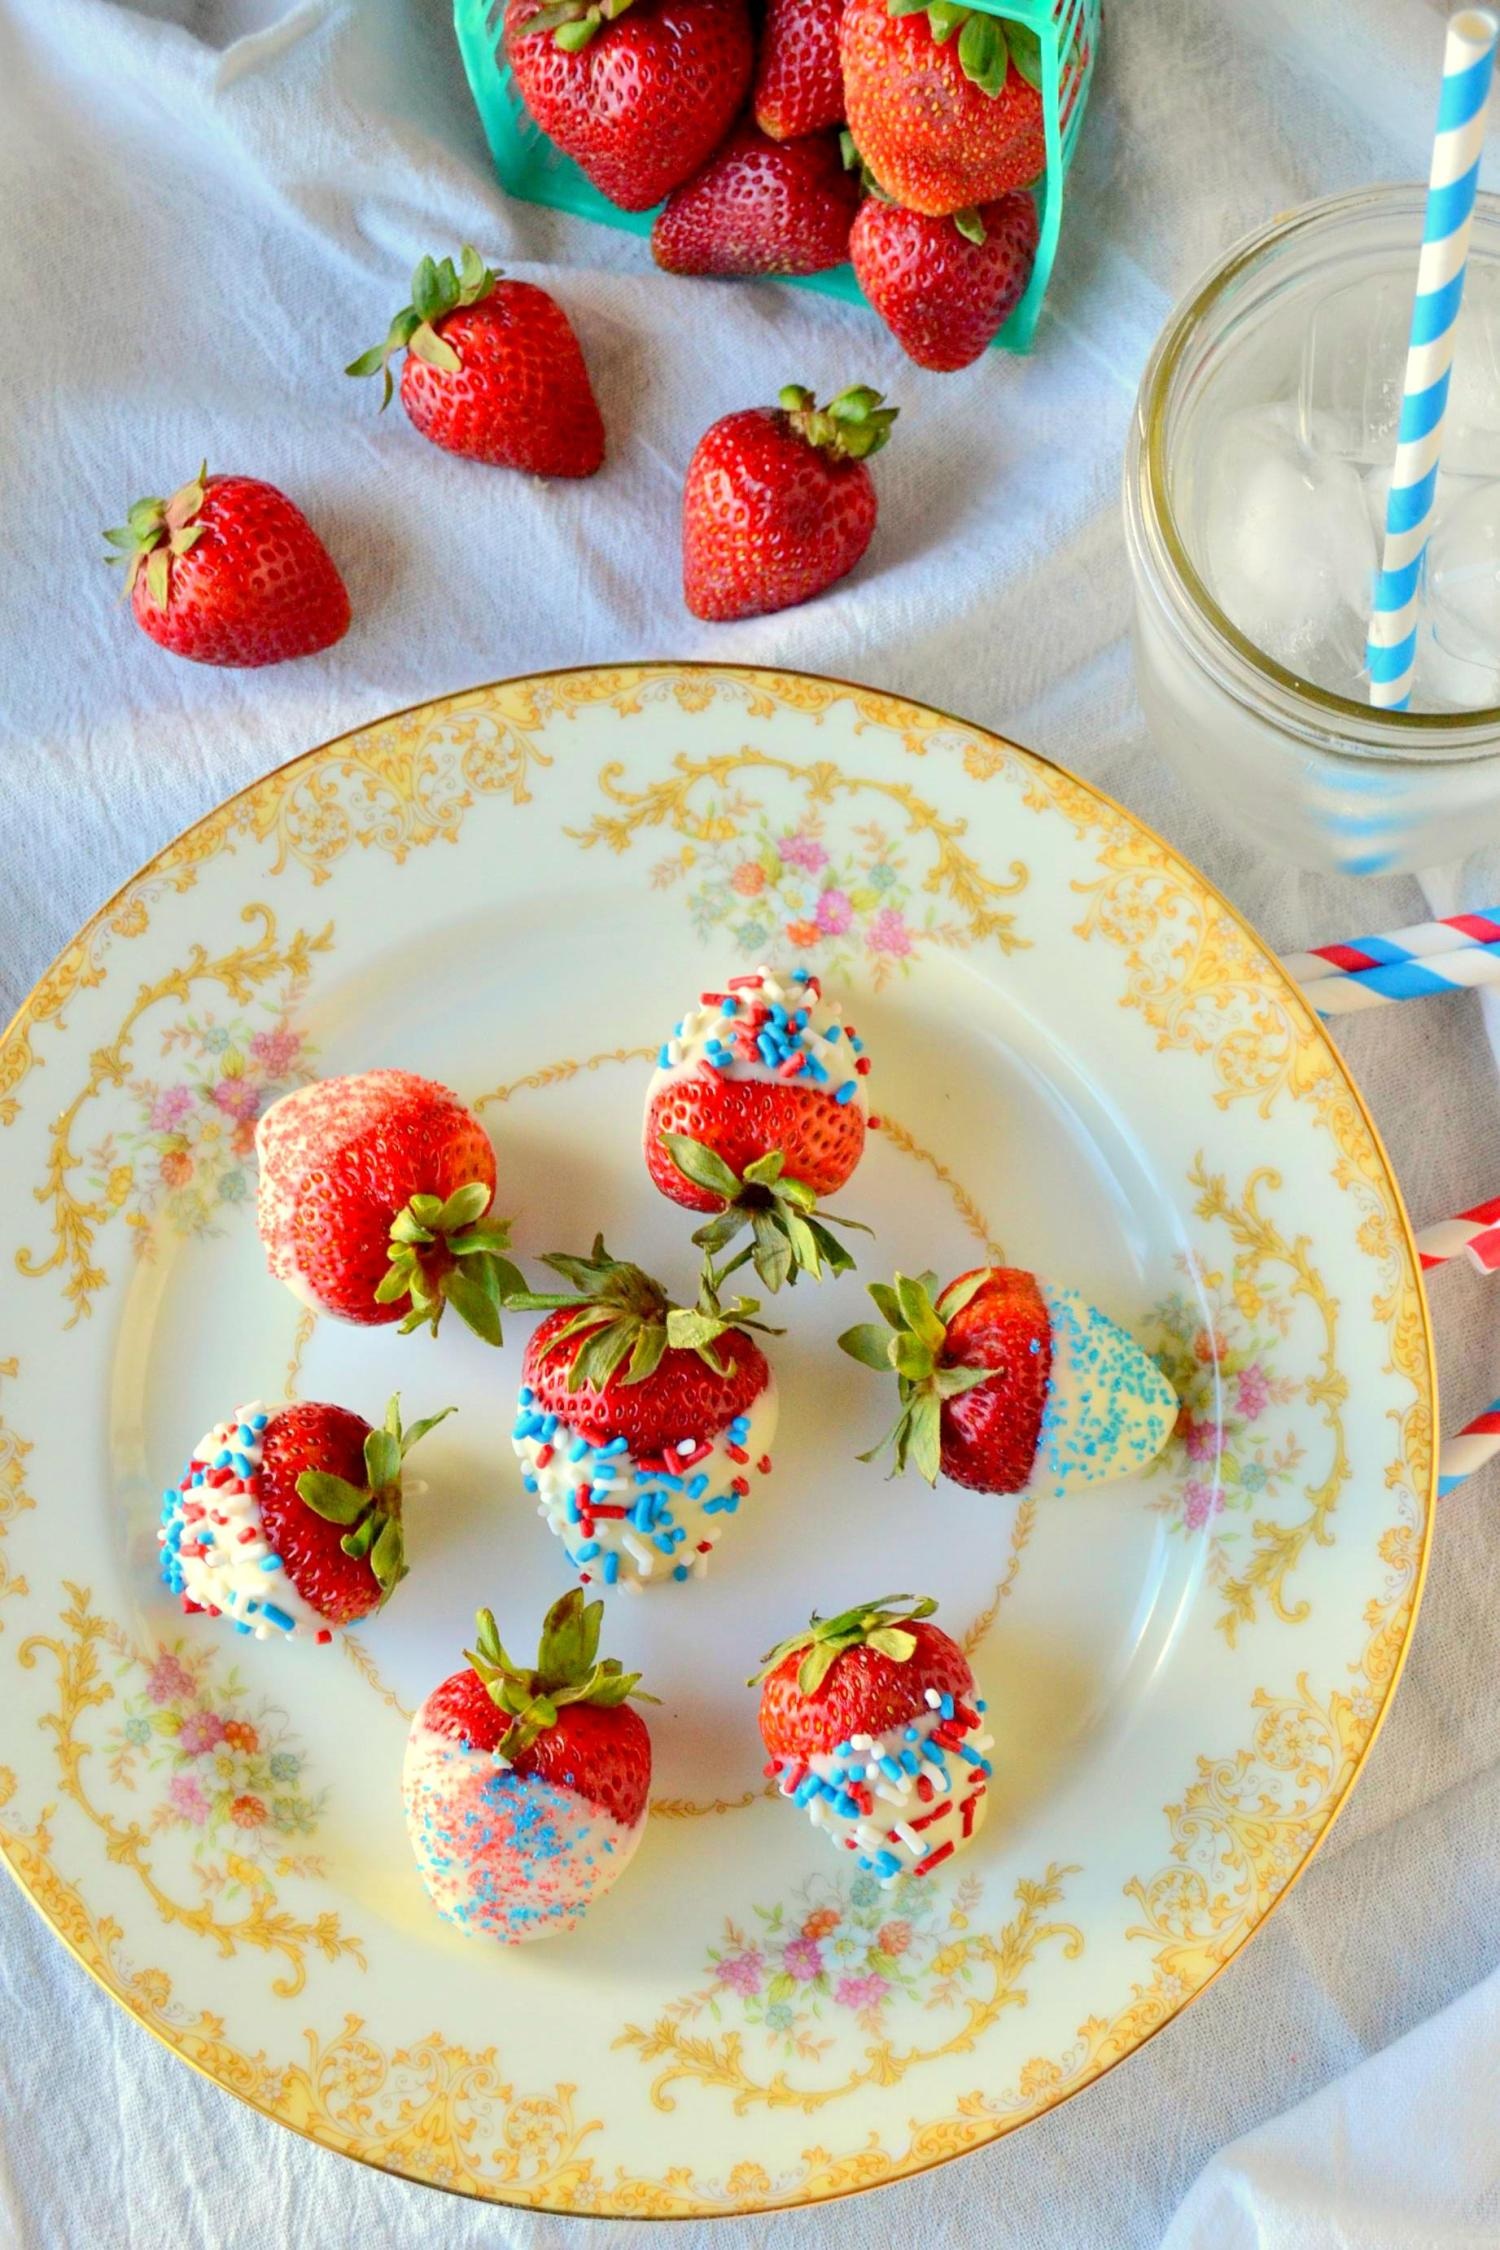 White Chocolate and Sprinkle Covered Strawberries